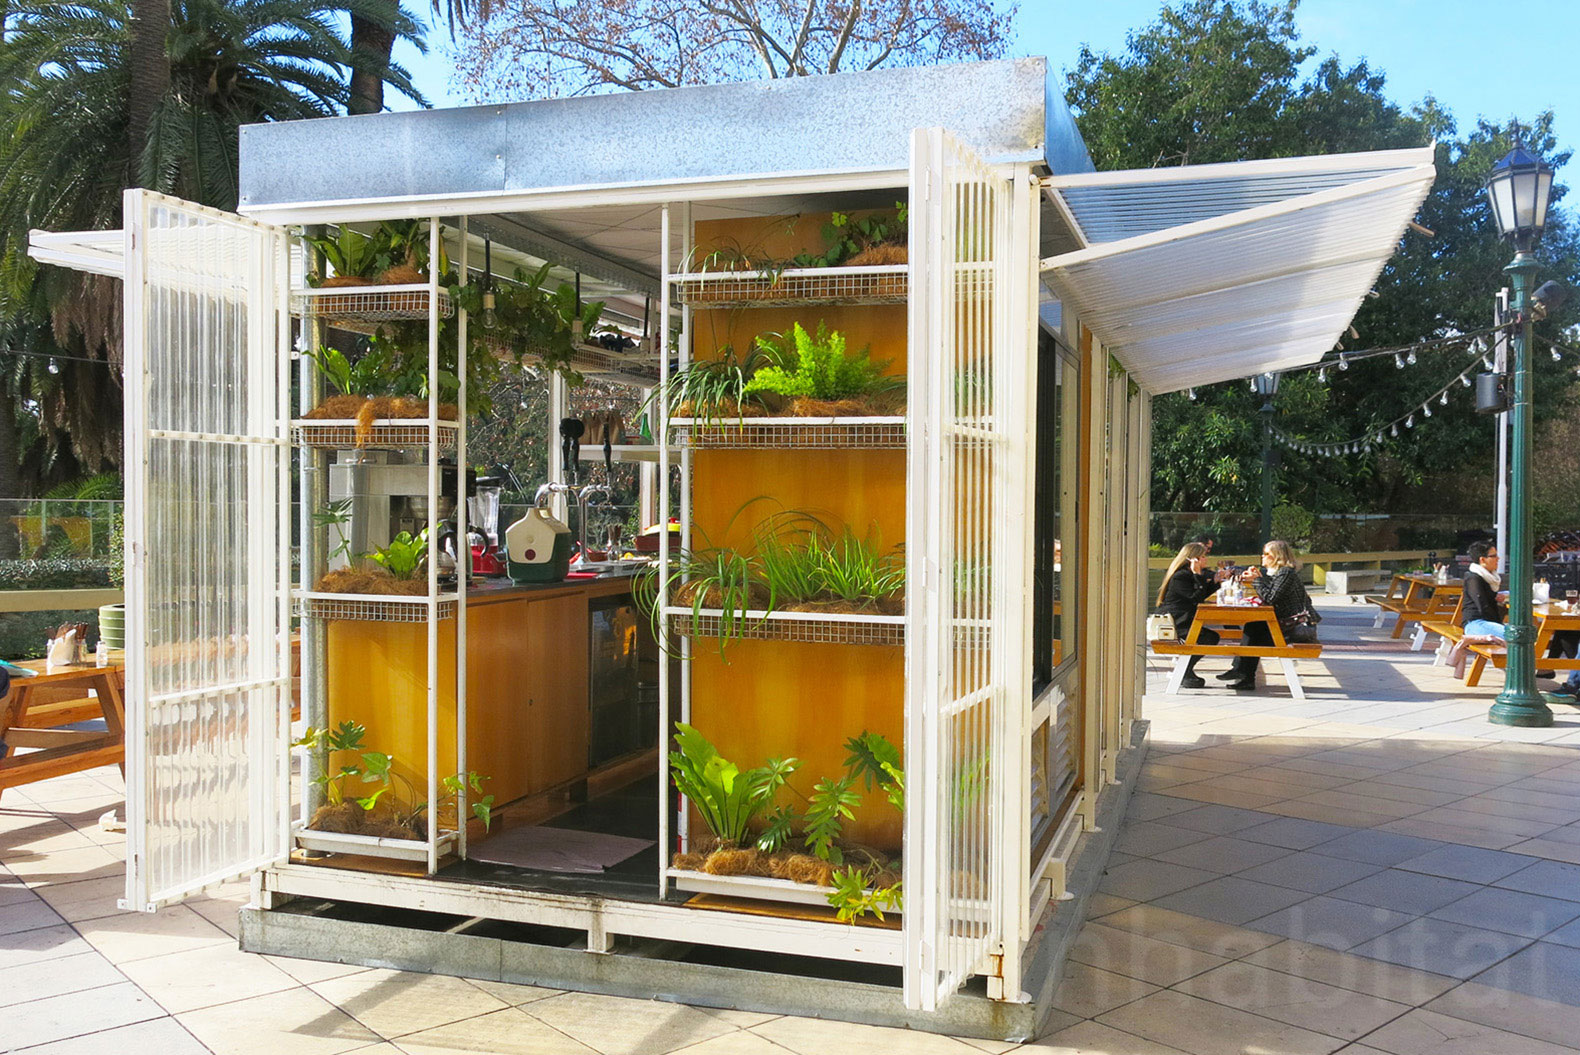 Delightful pop-up Camping restaurant brings the great outdoors to busy Buenos Aires